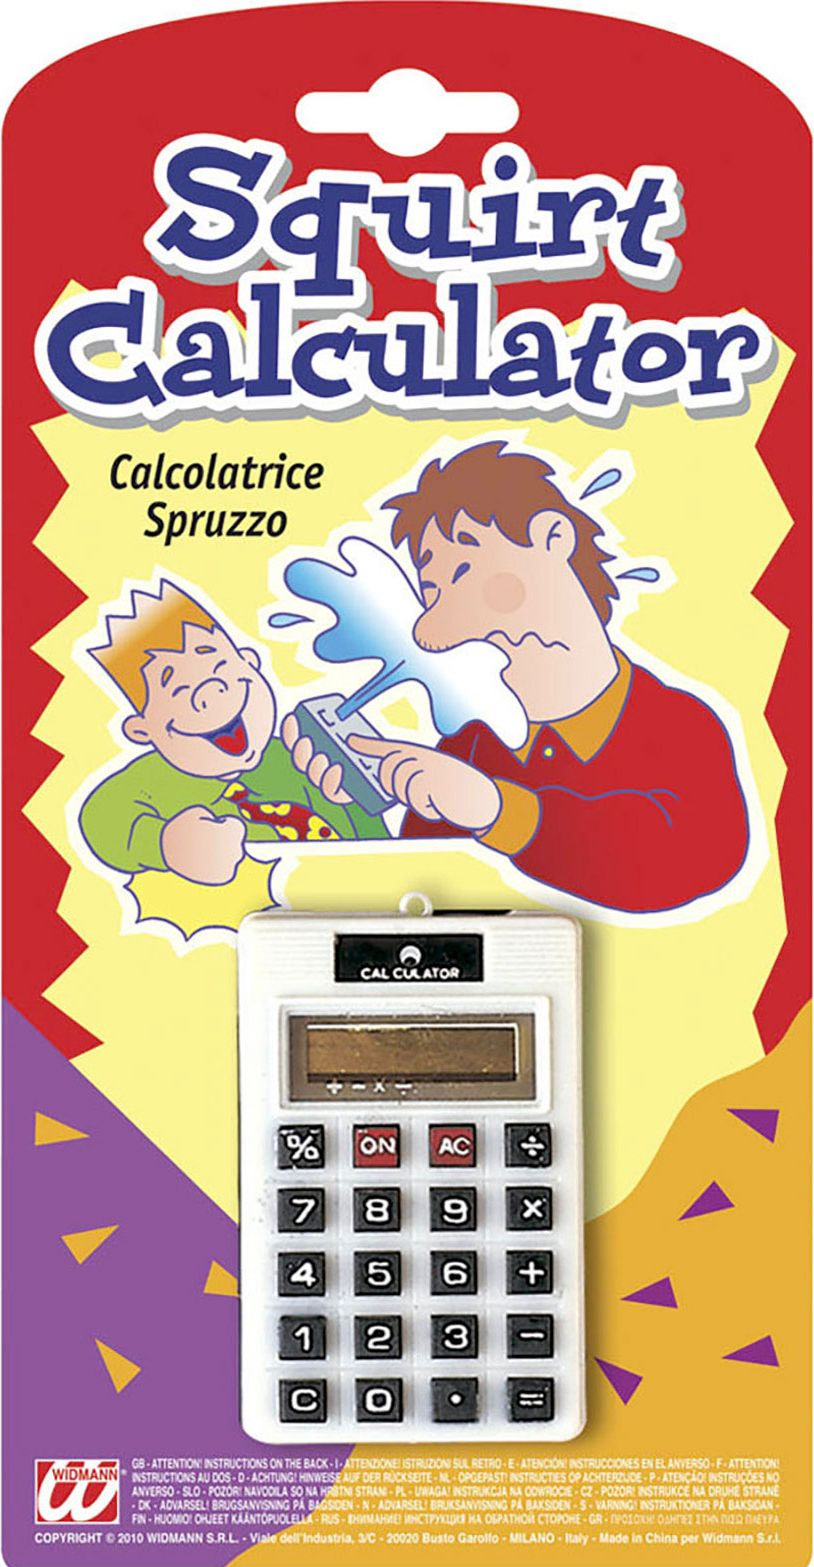 Spuitende fop calculator